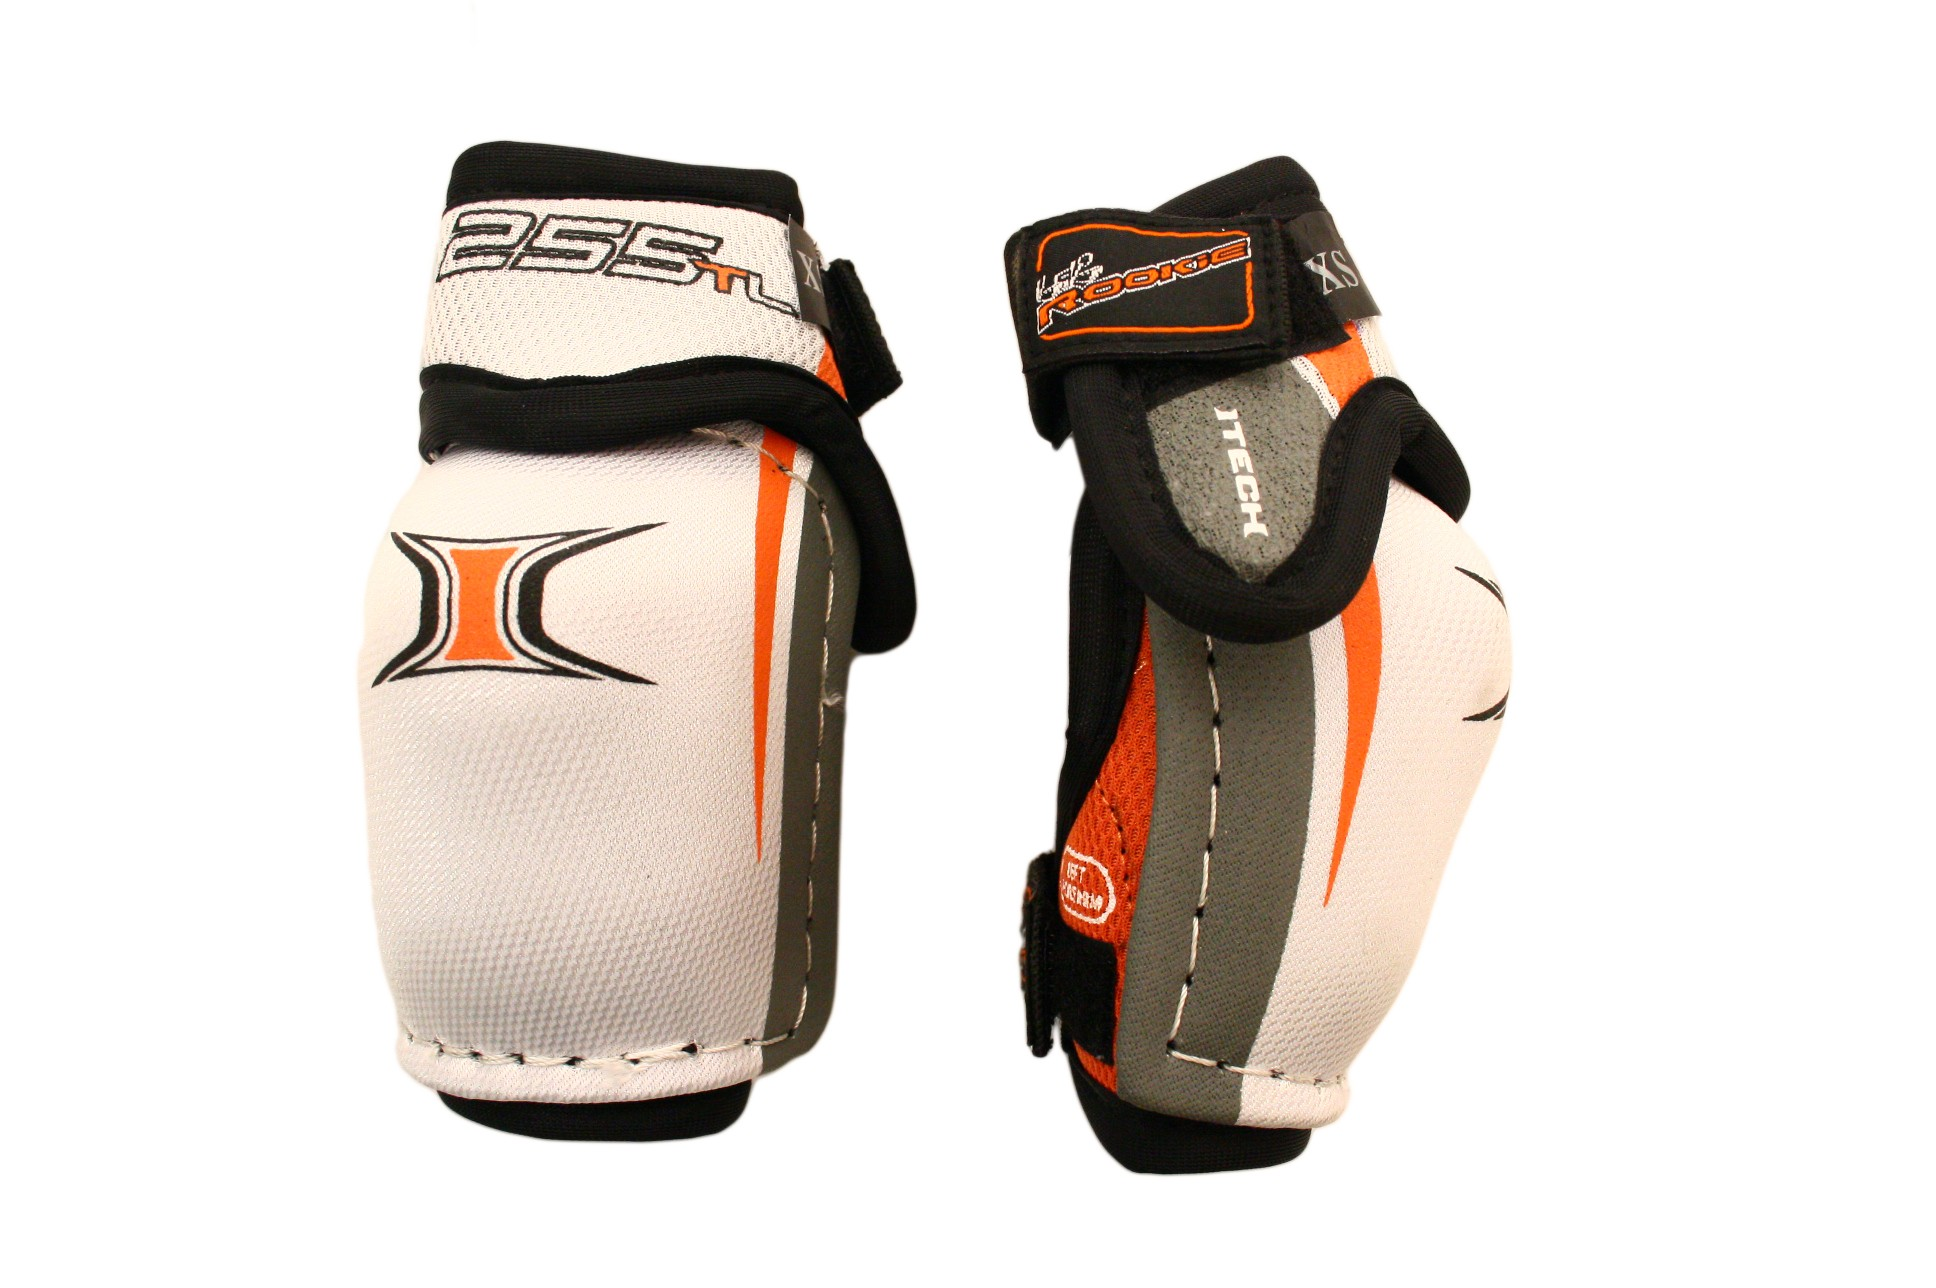 ITECH 225LT Youth Elbow Pads